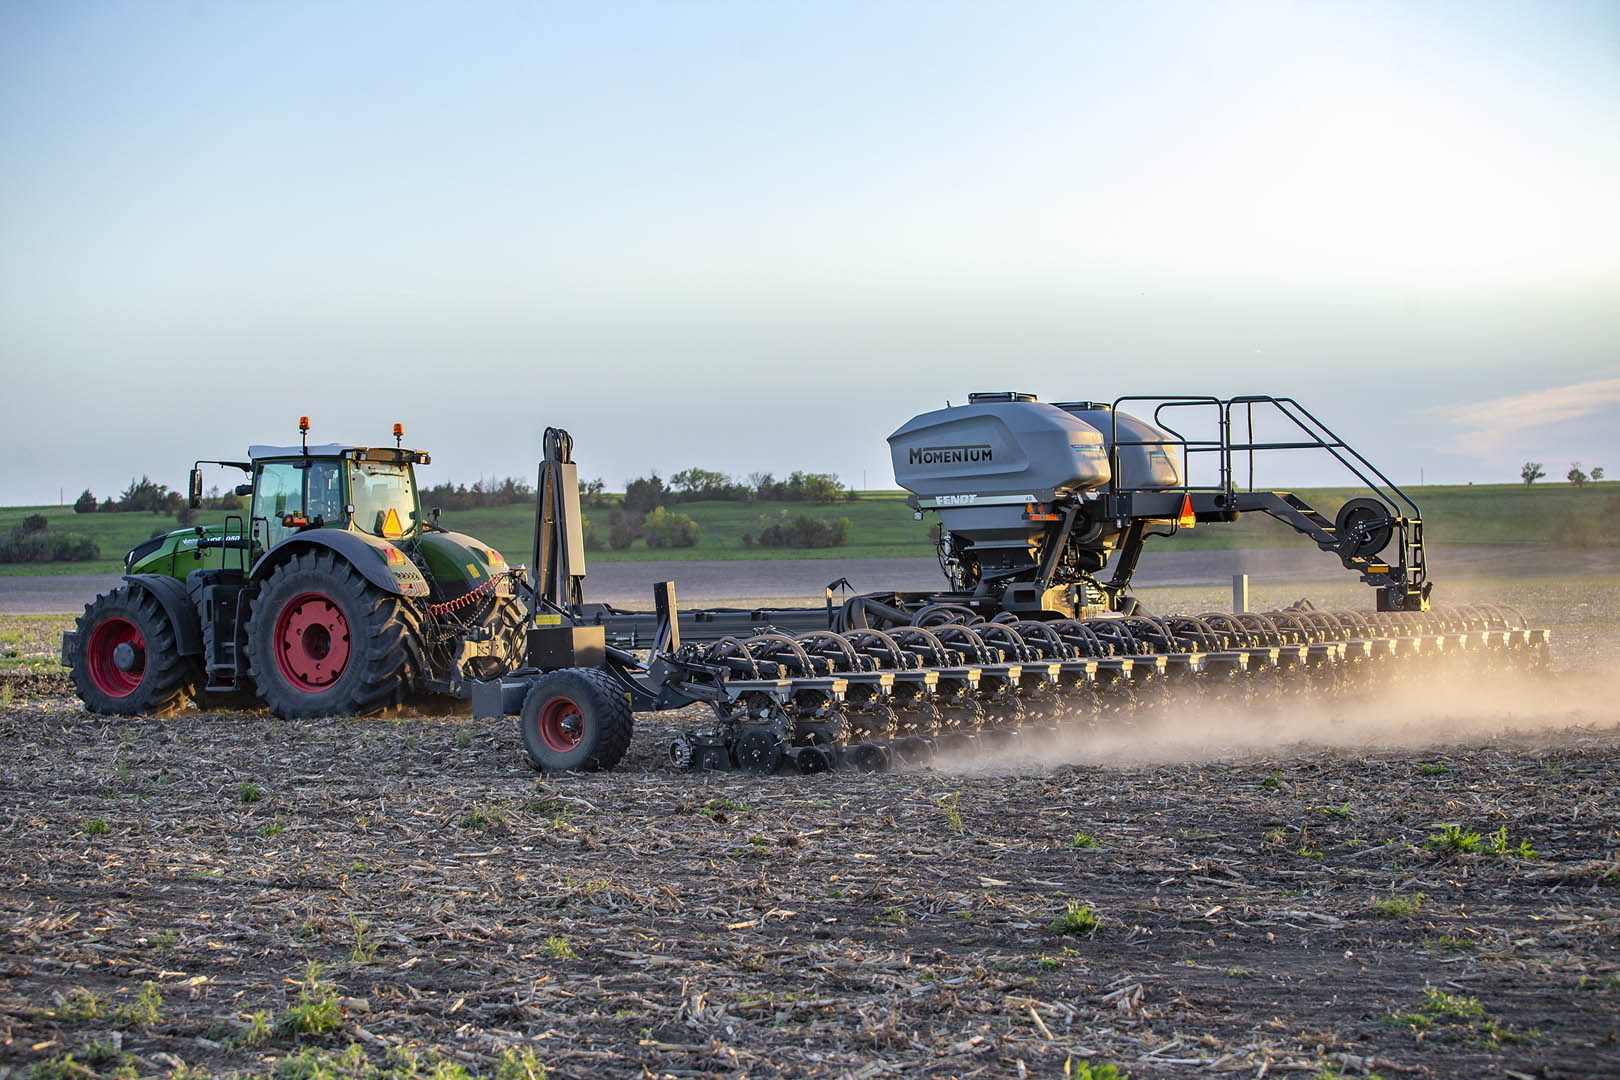 Fendt Momentum Planter working in the field during day